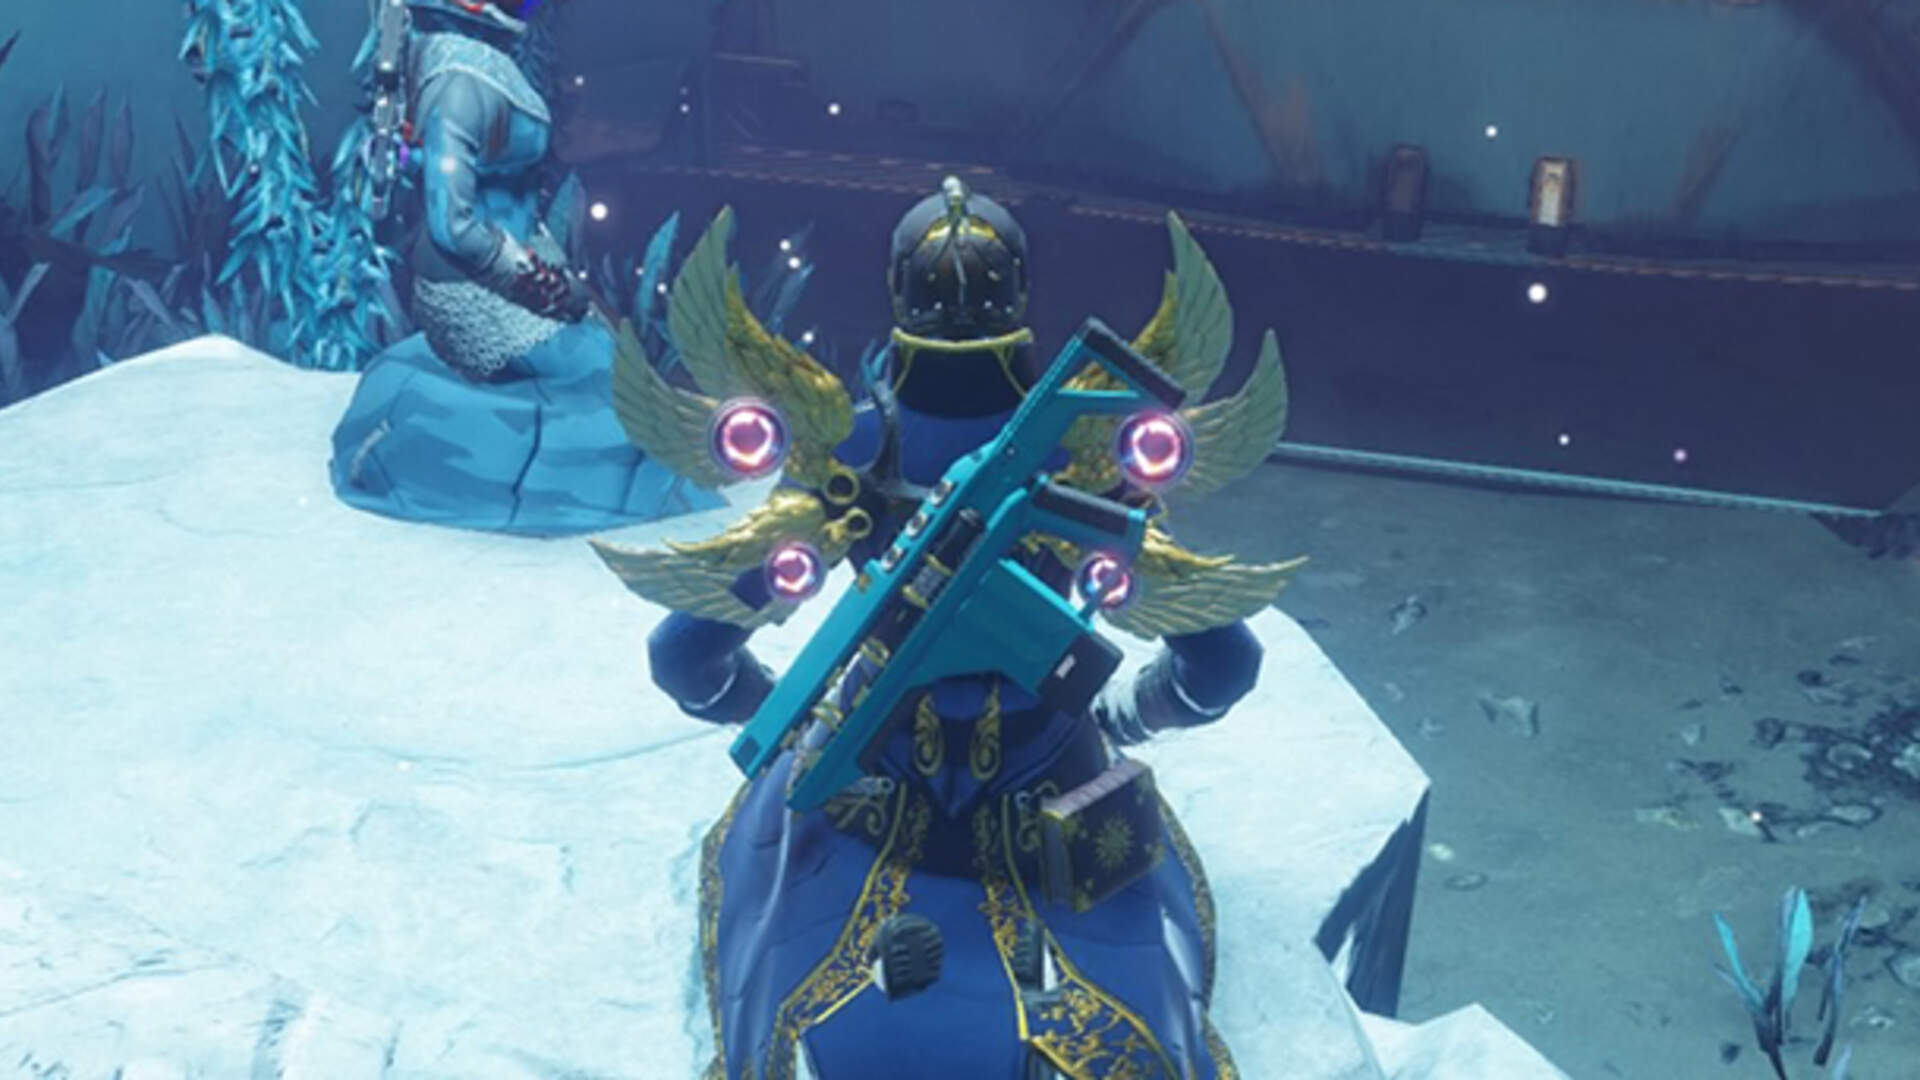 Destiny 2: Thoughts on the Endgame After Many Lost Hours